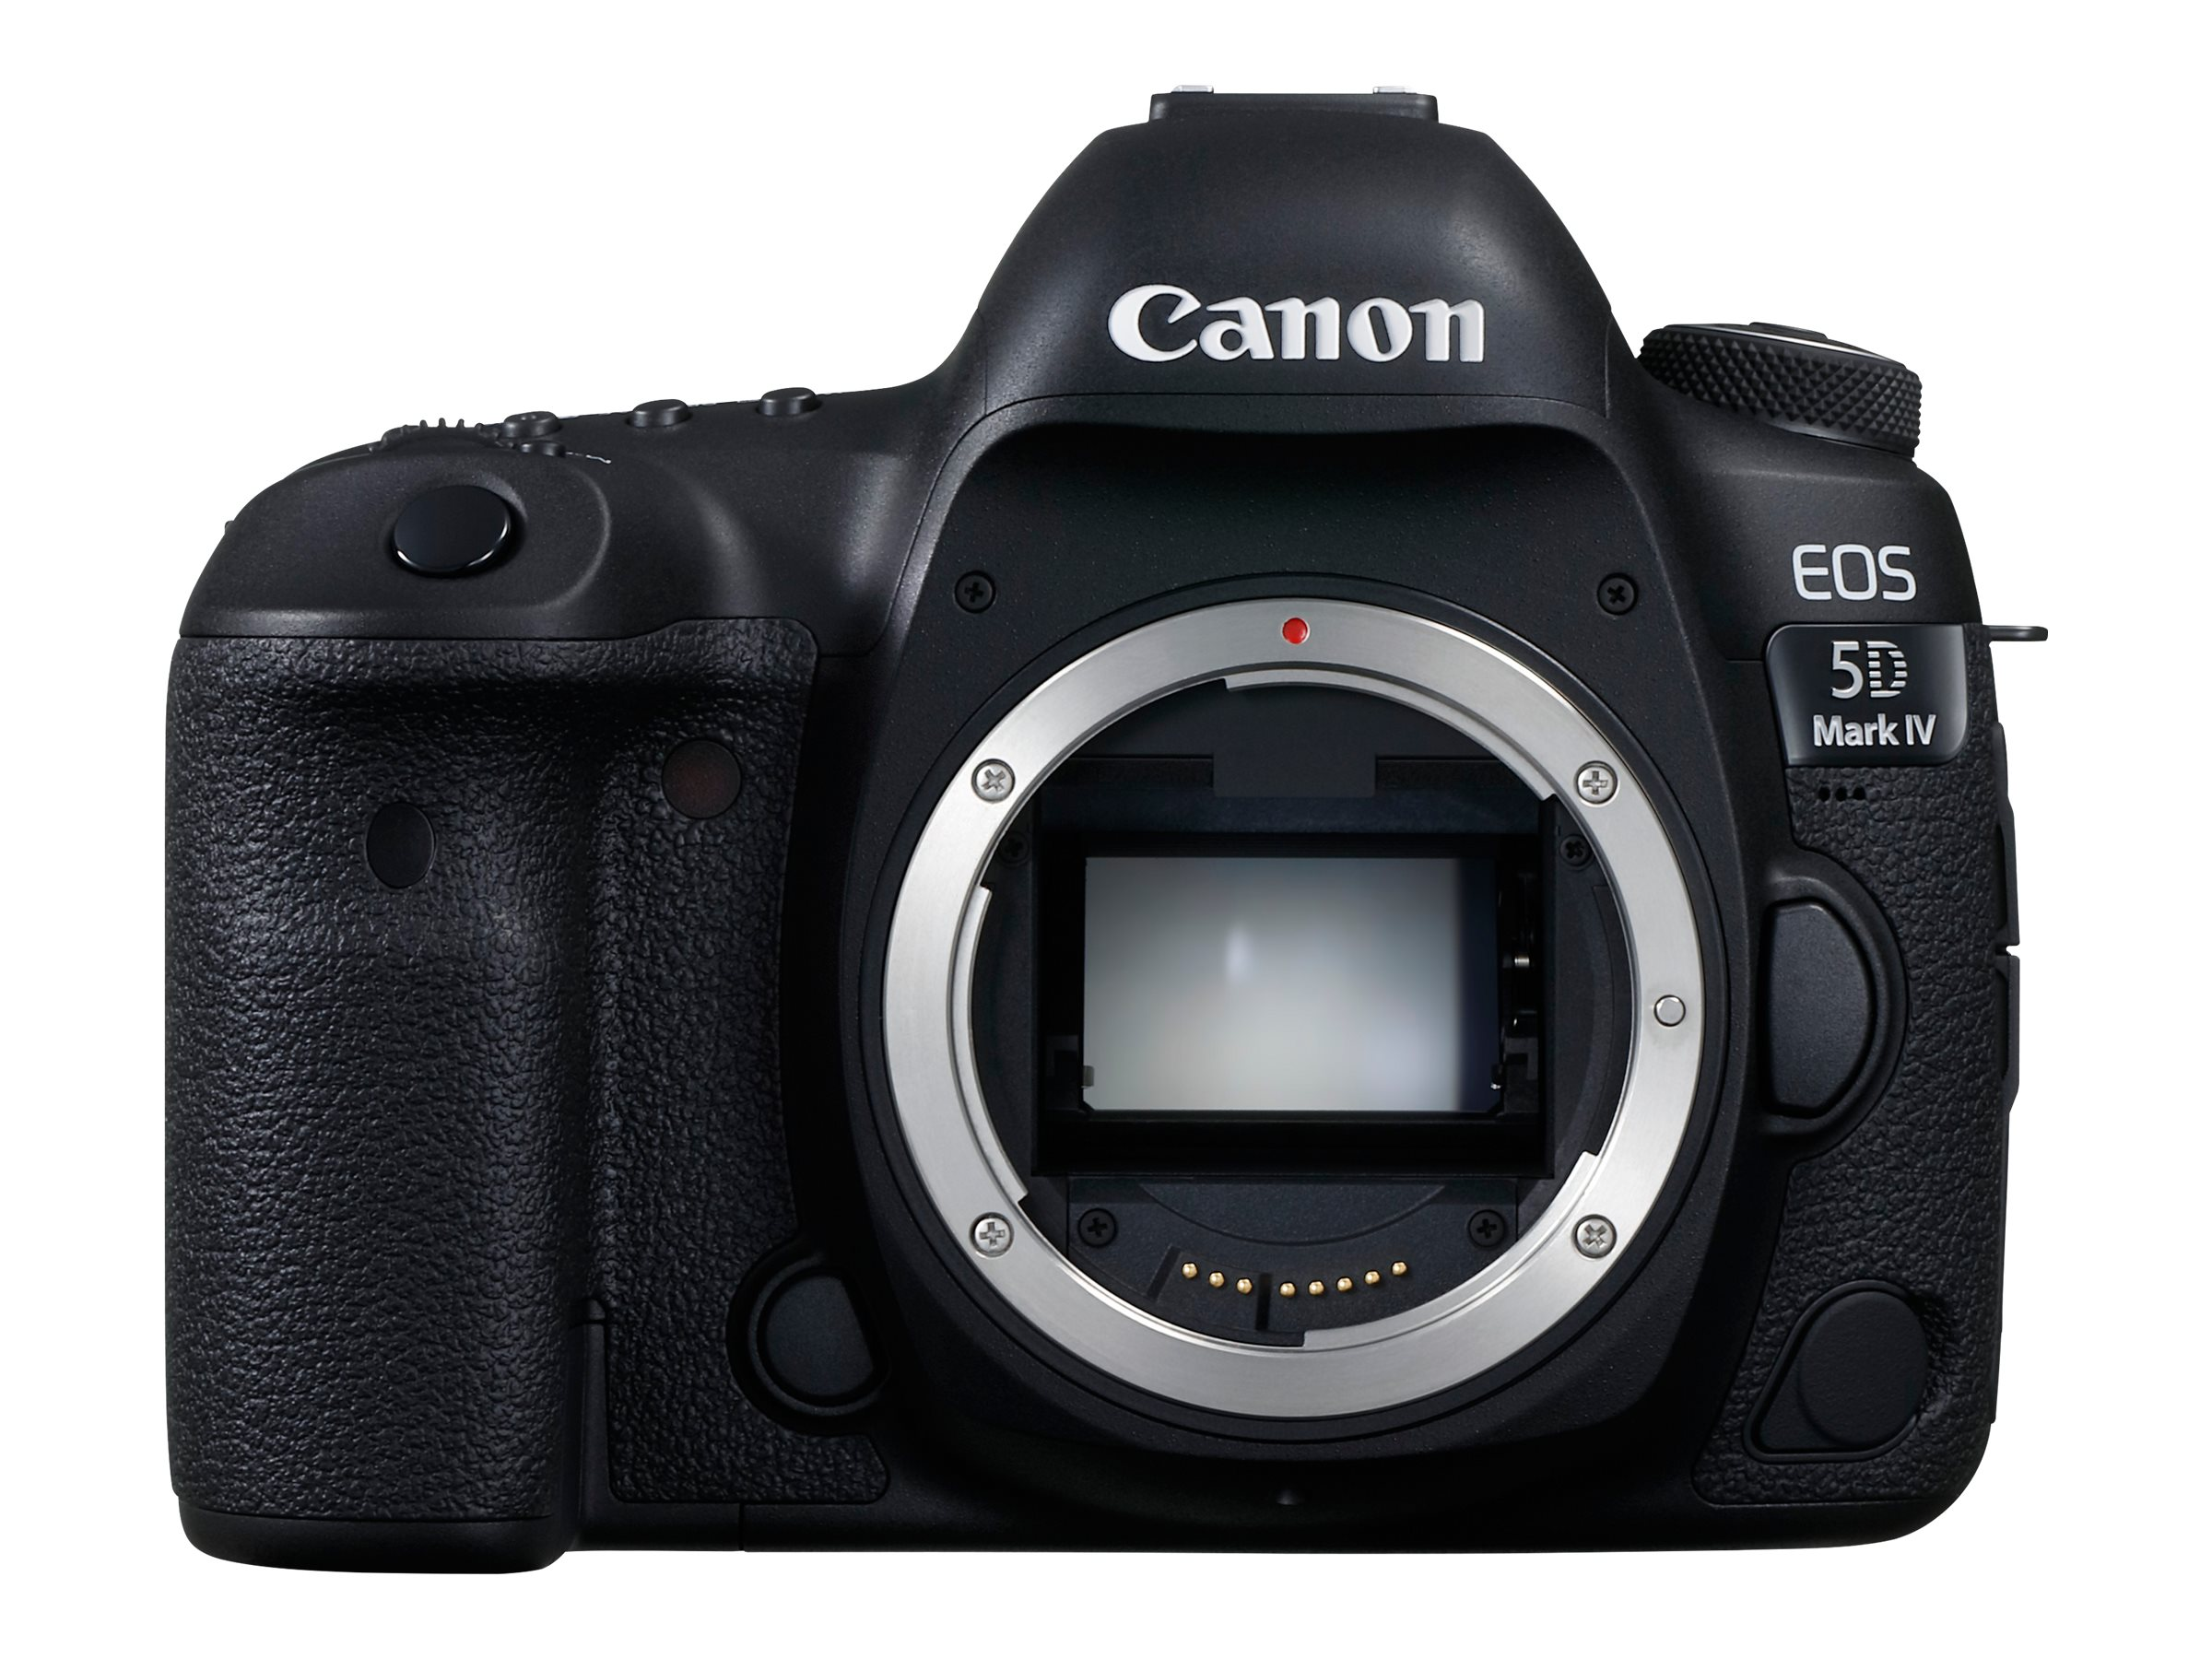 Image for Canon Eos 5D Mark Iv - Digital Camera - Body Only from Circuit City